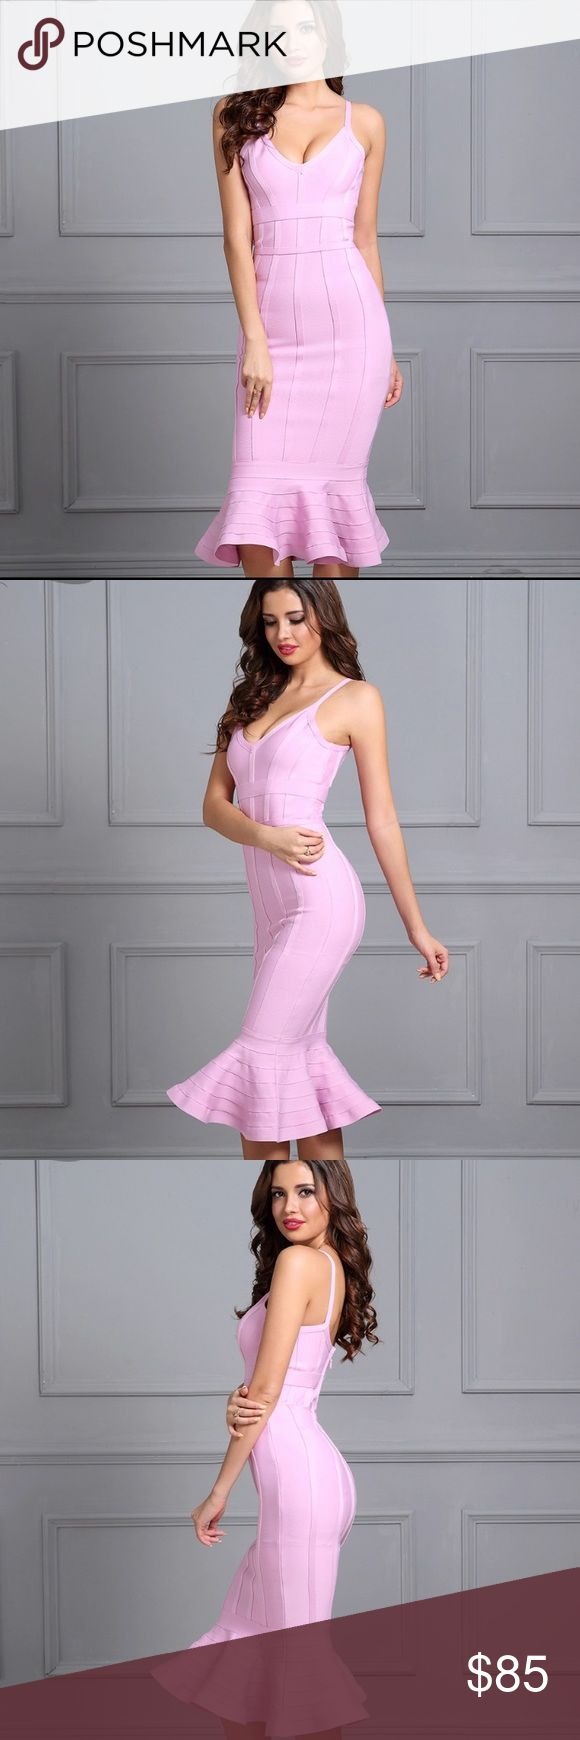 Baby Pink Mermaid Bandage Dress Body-contouring, curve-hugging dress. Strong, thick bands. High quality bandage dress. Very flattering fit for all body types. Great for any occasion. Dresses